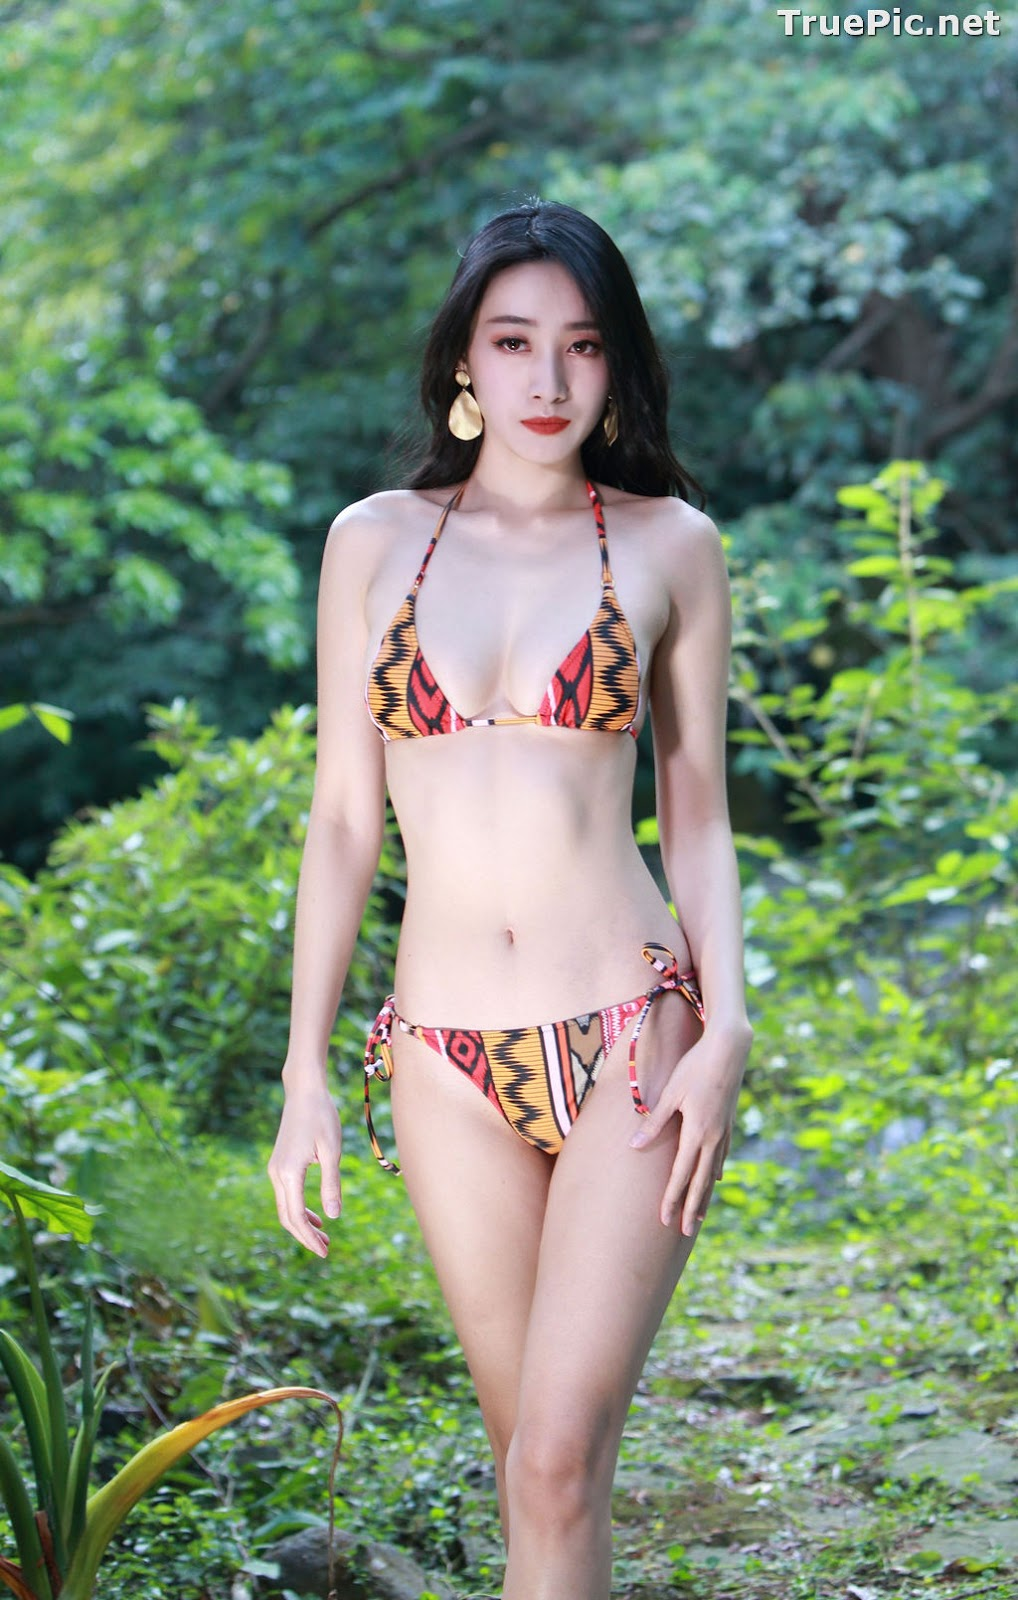 Image Taiwanese Model - 段璟樂 - Lovely and Sexy Bikini Baby - TruePic.net - Picture-10